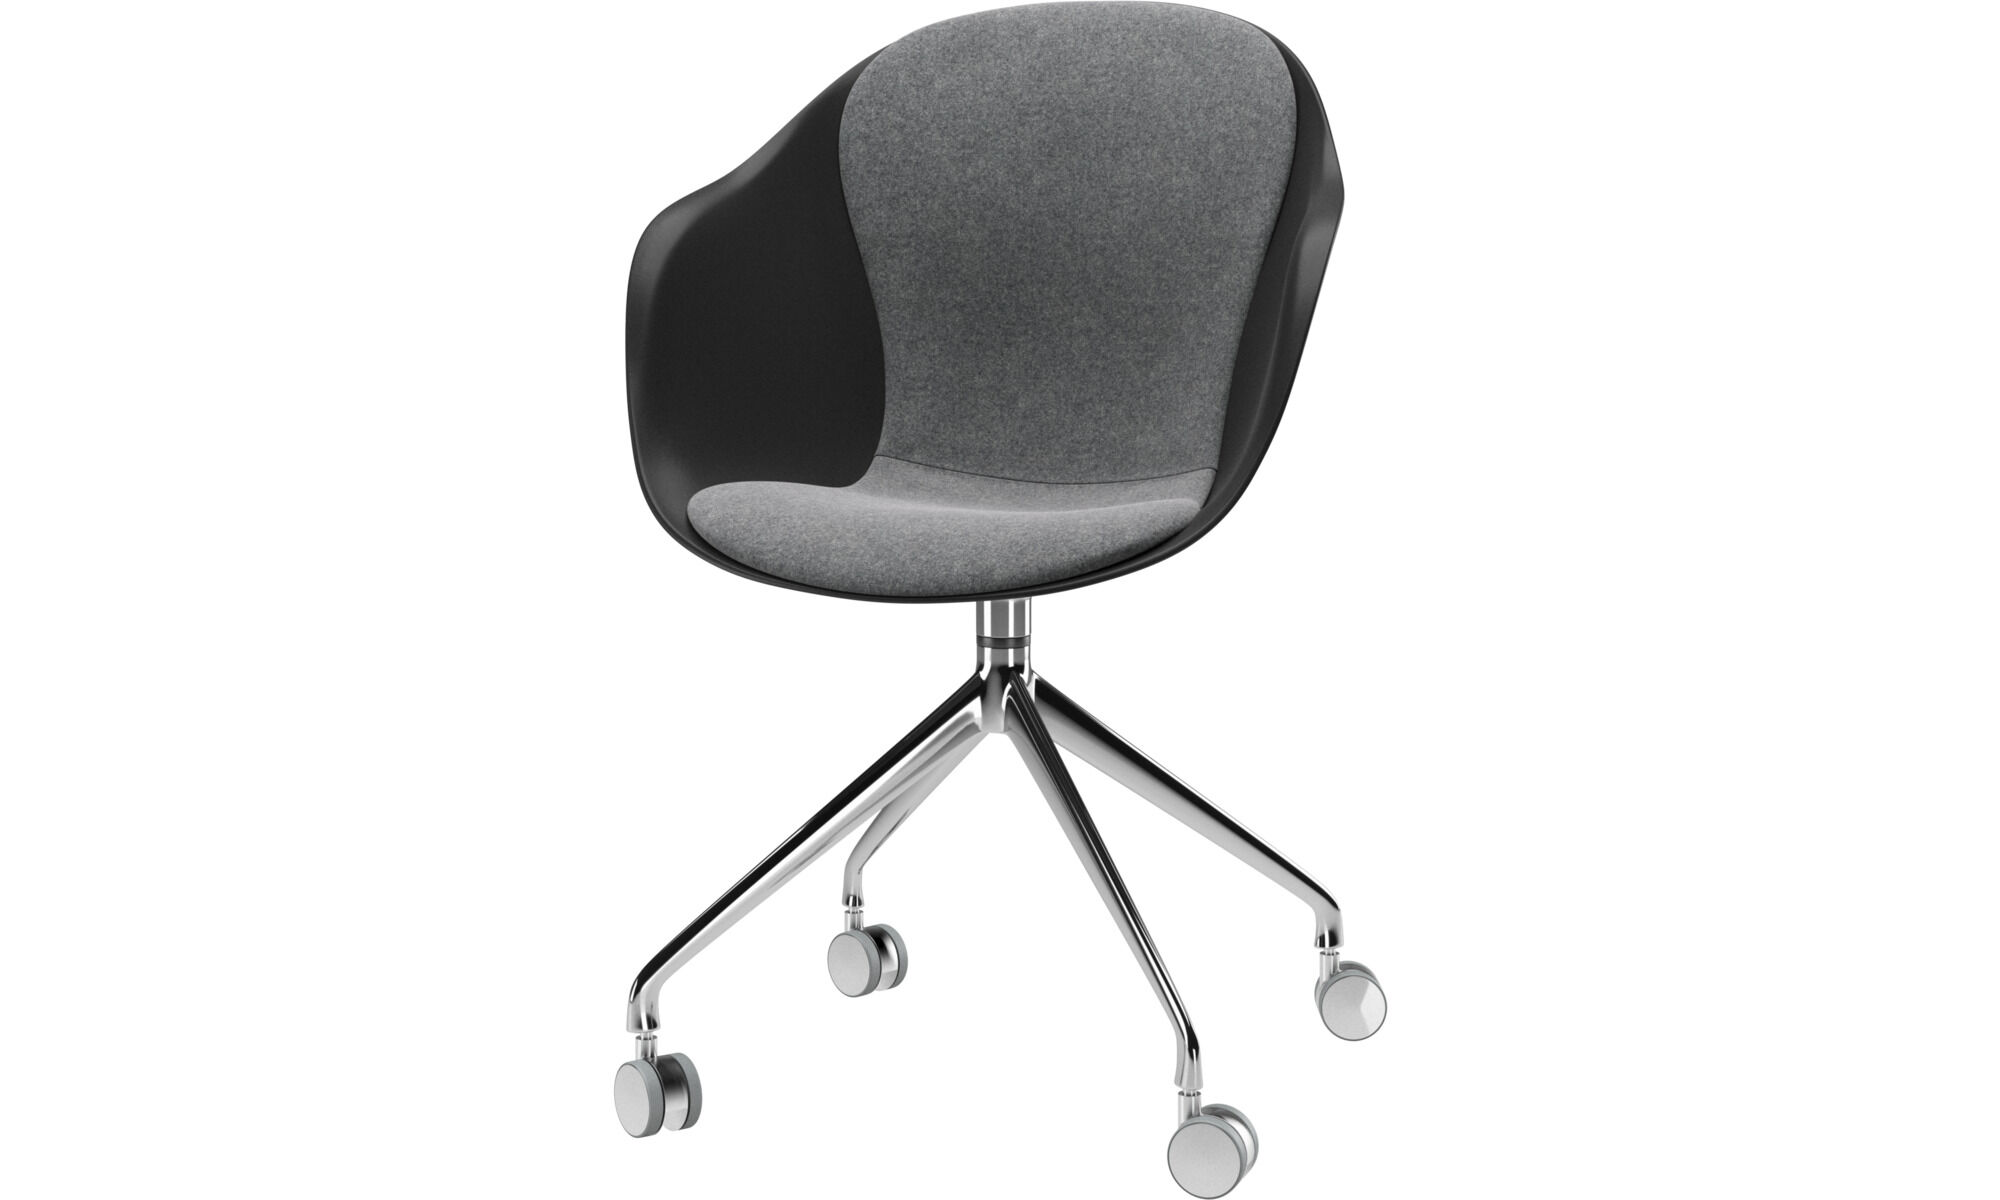 Adelaide Chair With Swivel Function And Wheels